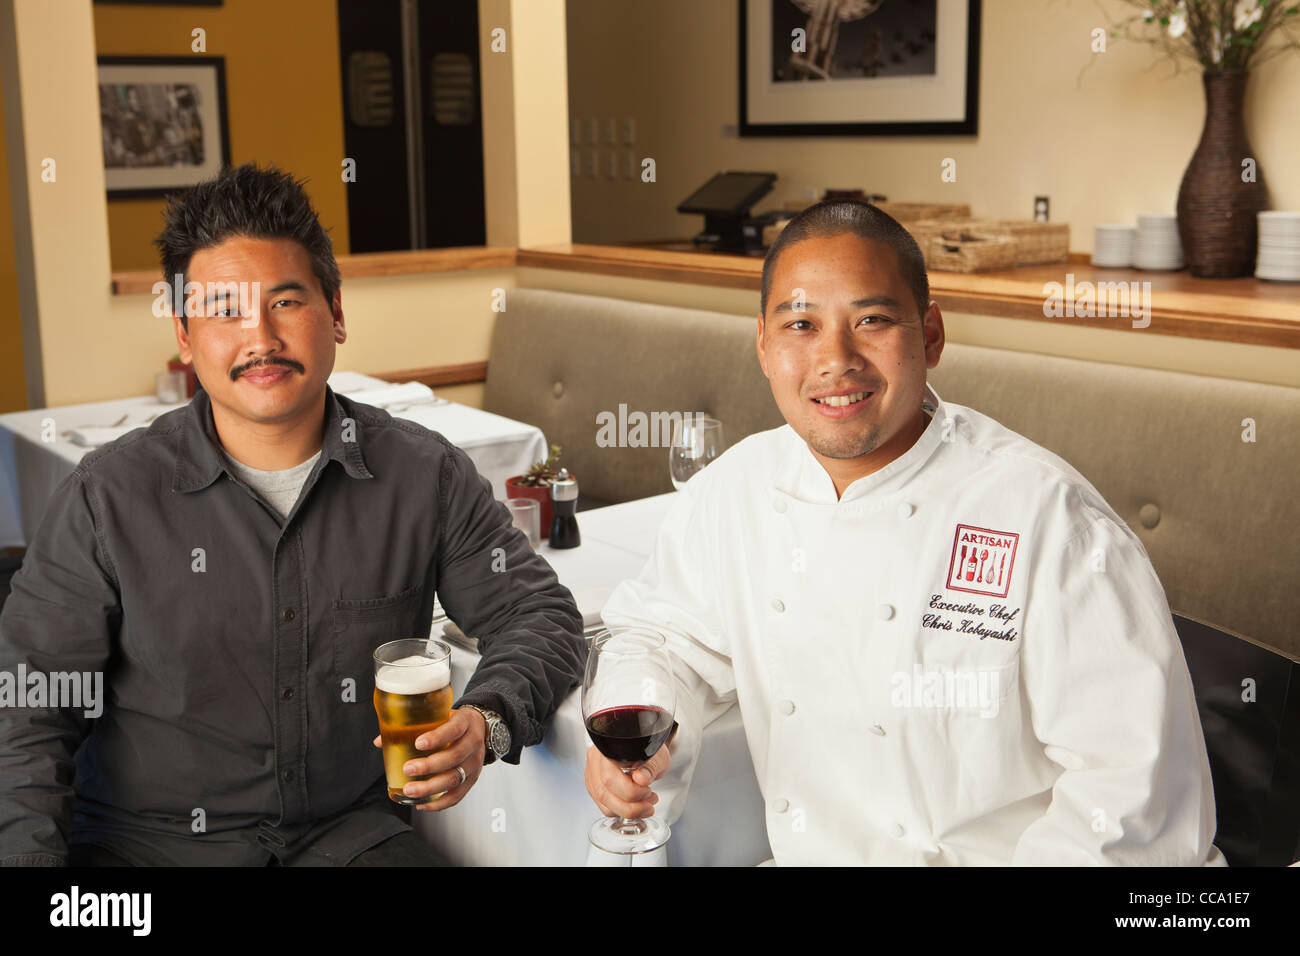 owners Chris and Mike Kobayashi, Artisan Restaurant, Paso Robles, California, United States of America - Stock Image